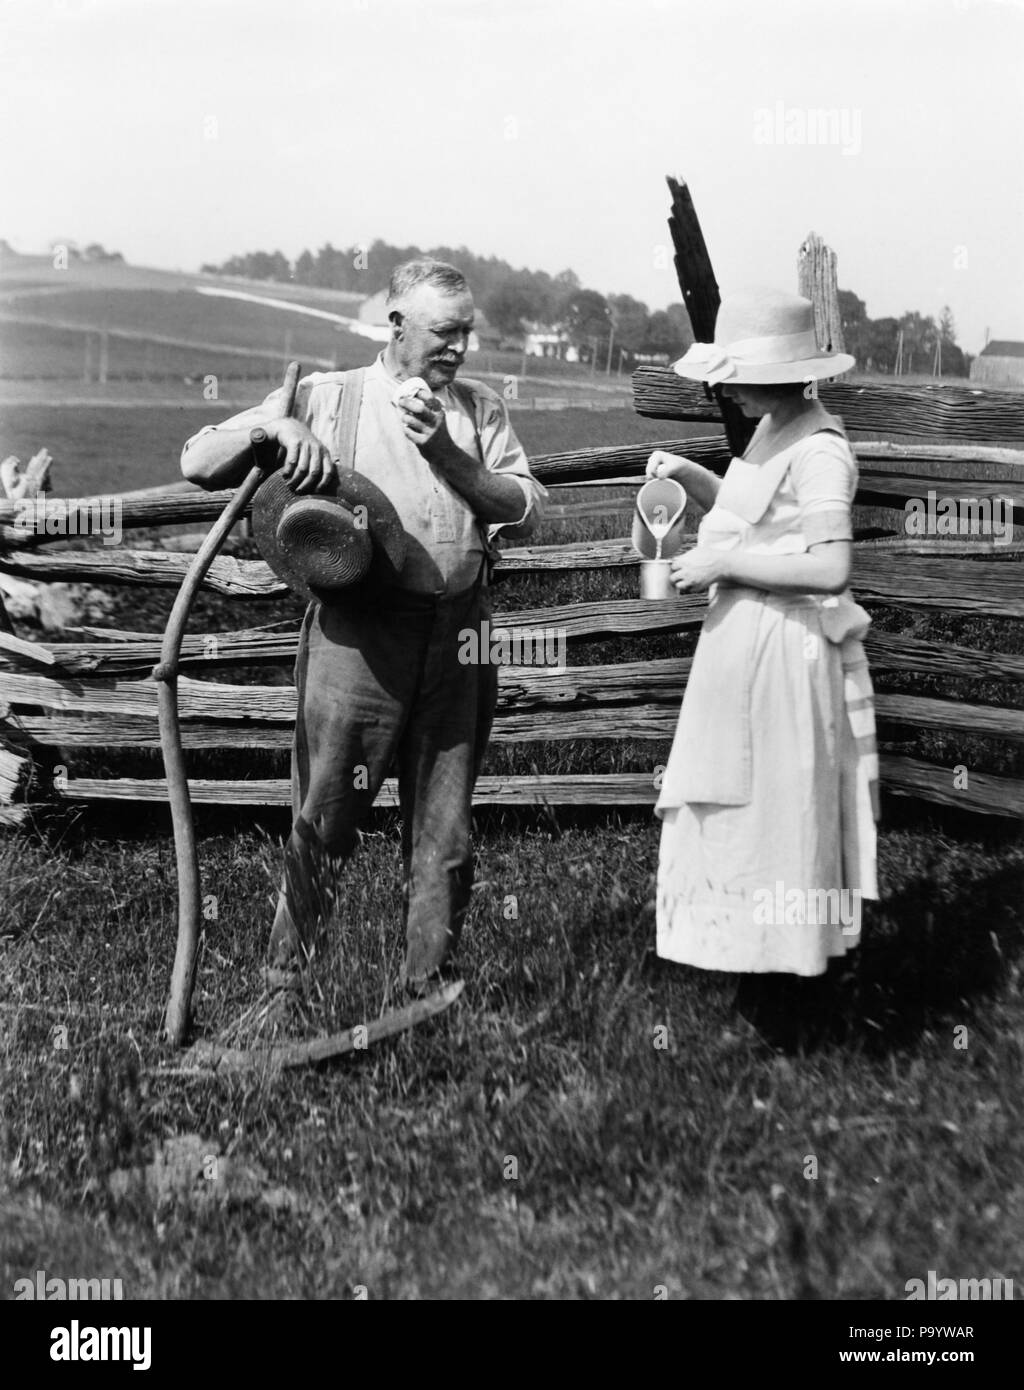 1890s 1900s 1910s WOMAN STRAW HAT APRON POURING GLASS MILK WATER FOR FARMER STANDING SWEATING BY FENCE LEANING ON SCYTHE - o6374 HAR001 HARS TOOL OLD FASHION STYLE FEMALES MARRIED RURAL HEAT SPOUSE HUSBANDS HEALTHINESS HOME LIFE COPY SPACE FRIENDSHIP FULL-LENGTH LADIES DRY PERSONS CARING FARMING MALES SWEAT SENIOR MAN SWEATING AGRICULTURE B&W SUMMERTIME PITCHER TURN OF THE 20TH CENTURY FARMERS SCYTHE STRAW HAT NOURISHMENT SUPPORT COURTESY REFRESH MID-ADULT WOMAN PERSPIRATION REFRESHMENT RELIEF THIRST THIRSTY TOGETHERNESS WIVES WOODEN FENCE BLACK AND WHITE CAUCASIAN ETHNICITY HAR001 - Stock Image